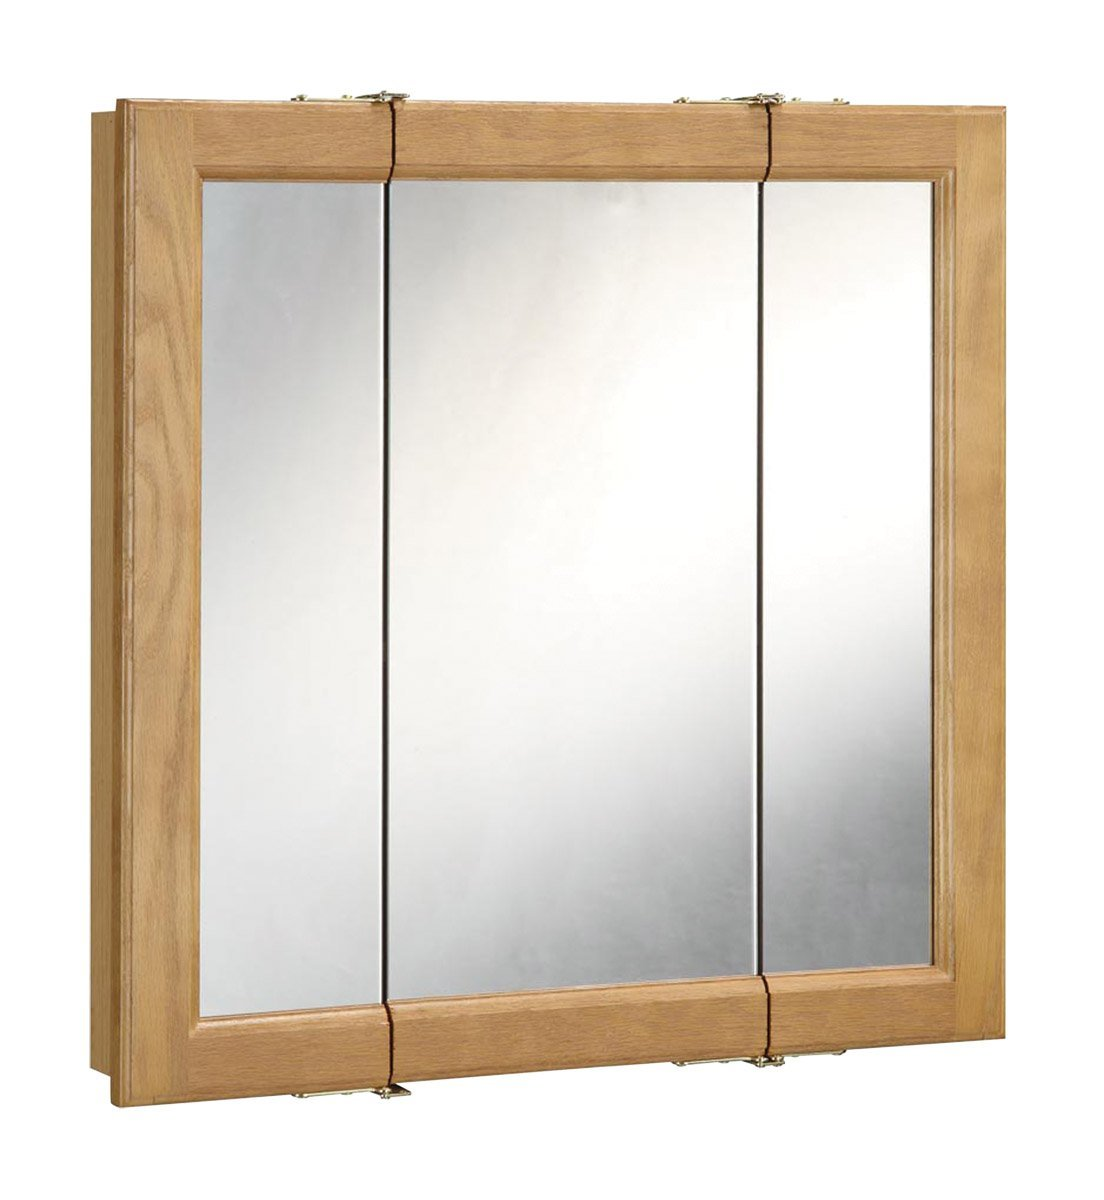 "Richland Nutmeg Oak Tri-View Medicine Cabinet Mirror with 3-Doors, 36"" by 30"""